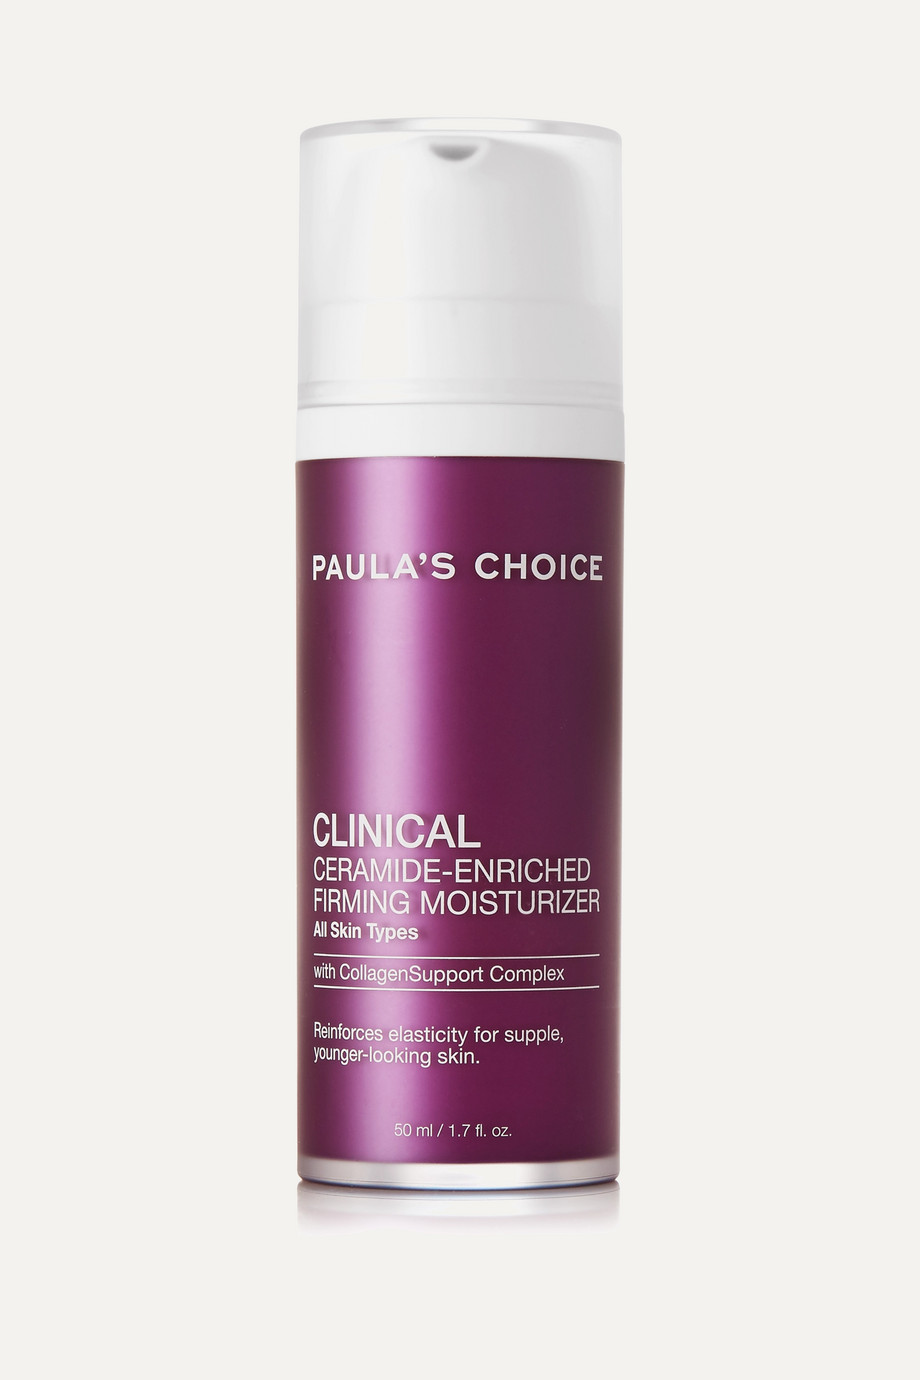 Paula's Choice Clinical Ceramide-Enriched Firming Moisturizer, 50 ml – Feuchtigkeitscreme